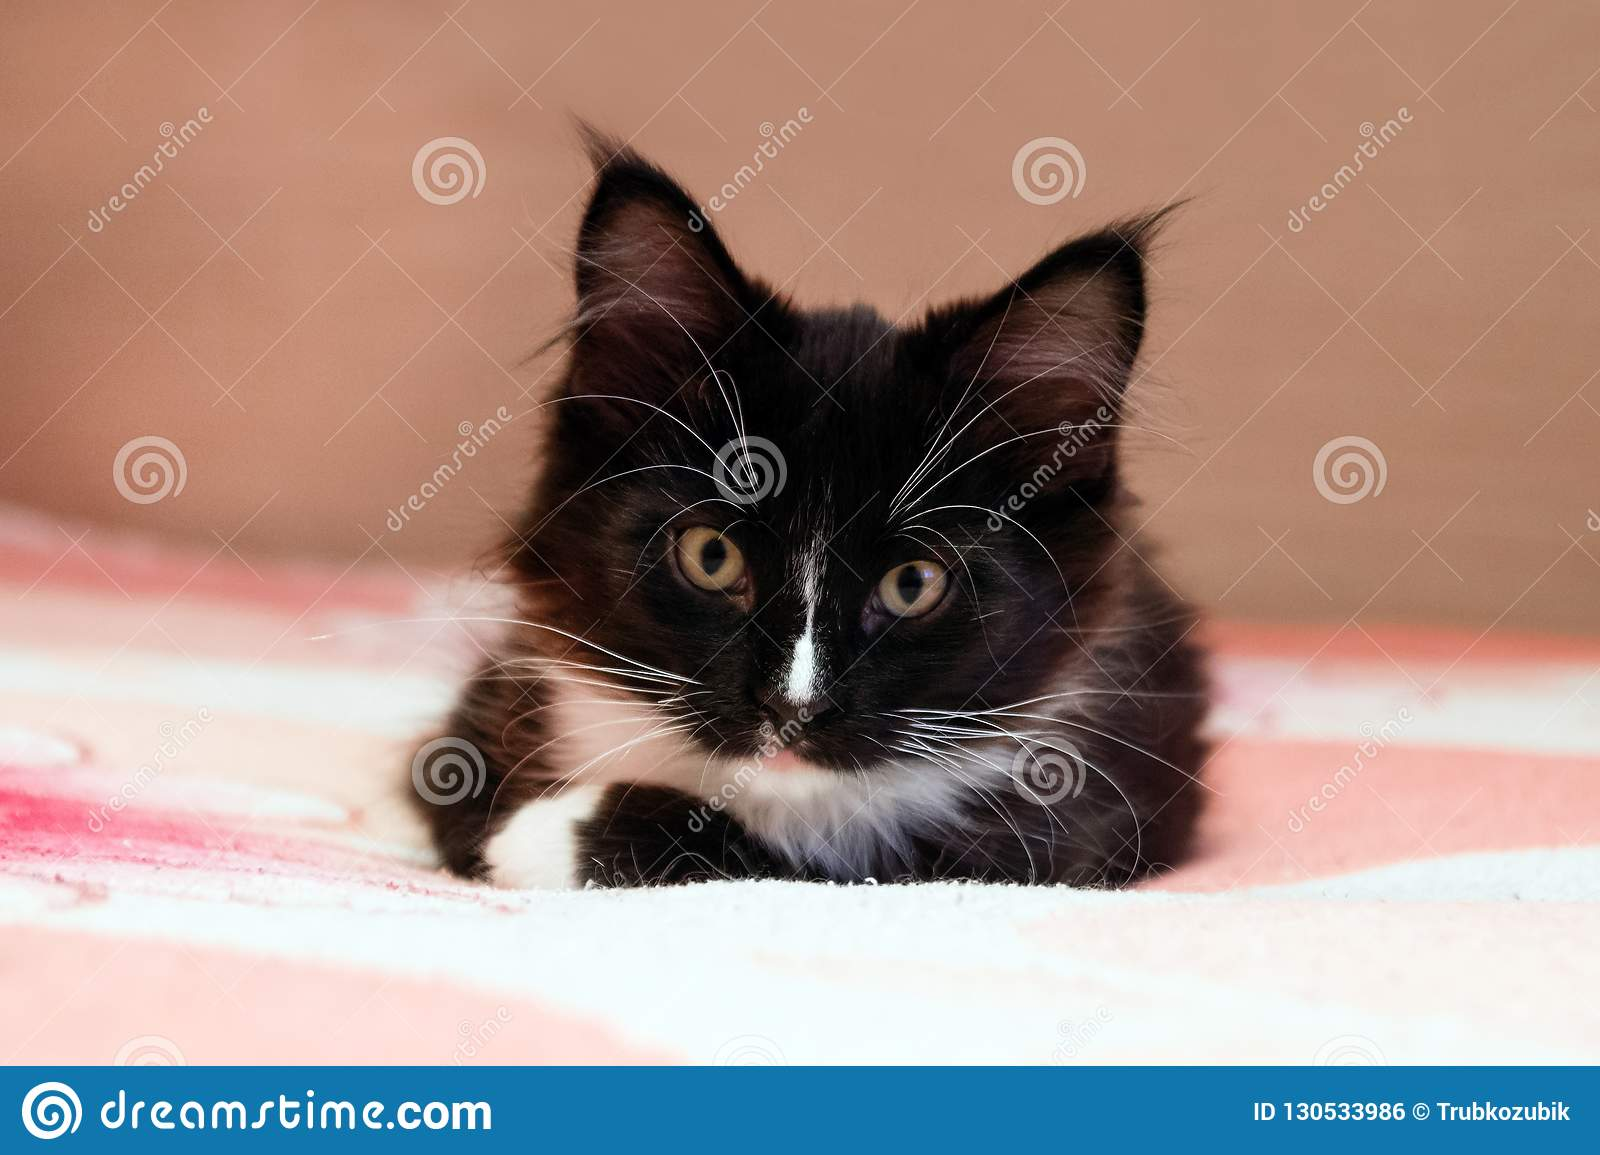 Portrait of adorable long haired black and white kitten lying on a bed